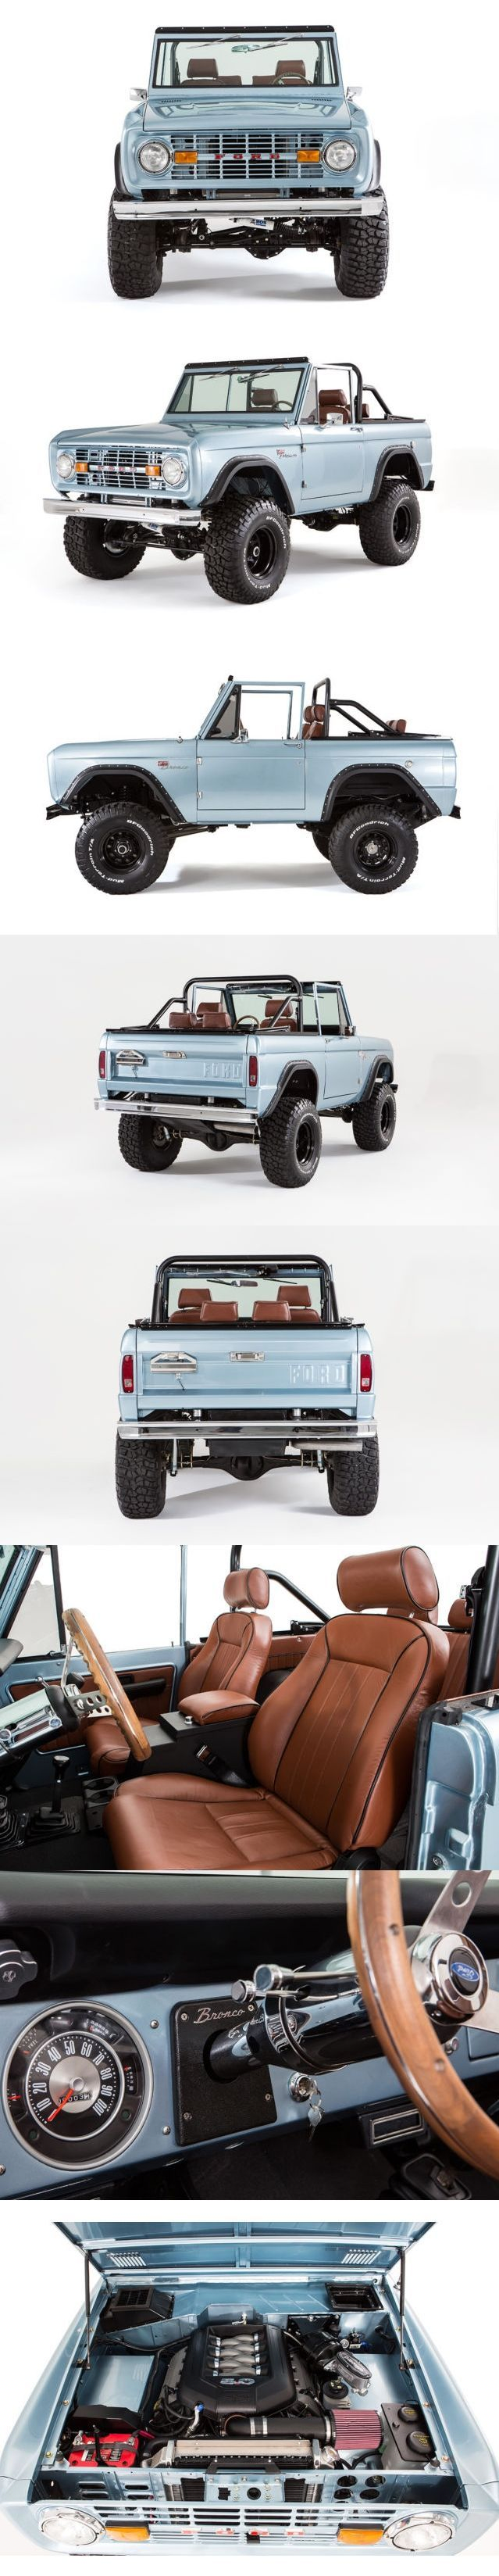 1974 Ford Bronco Restoration with Coyote 5.0L V8 Engine